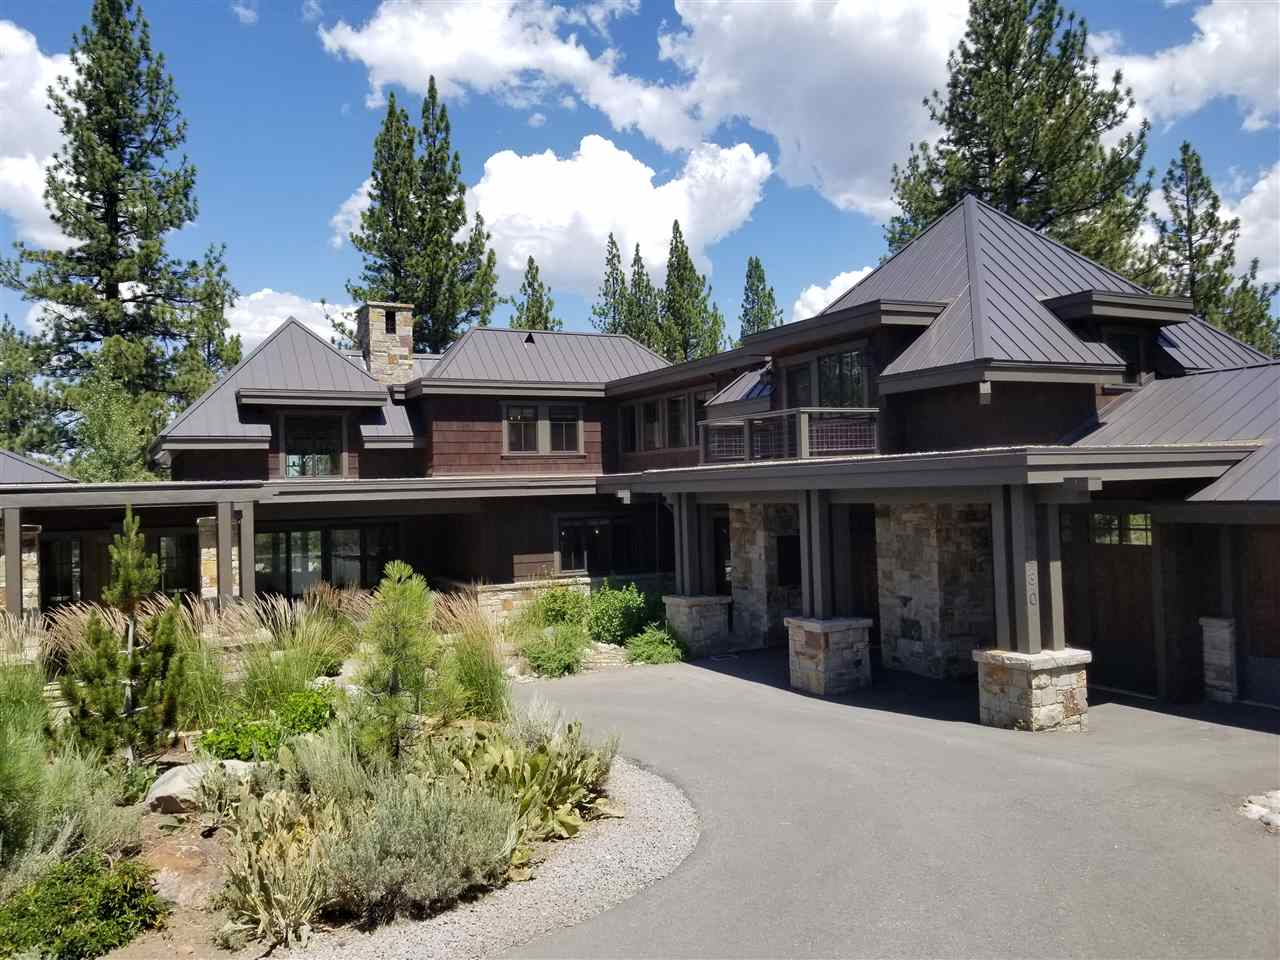 Image for 9630 Dunsmuir Way, Truckee, CA 96161-0000